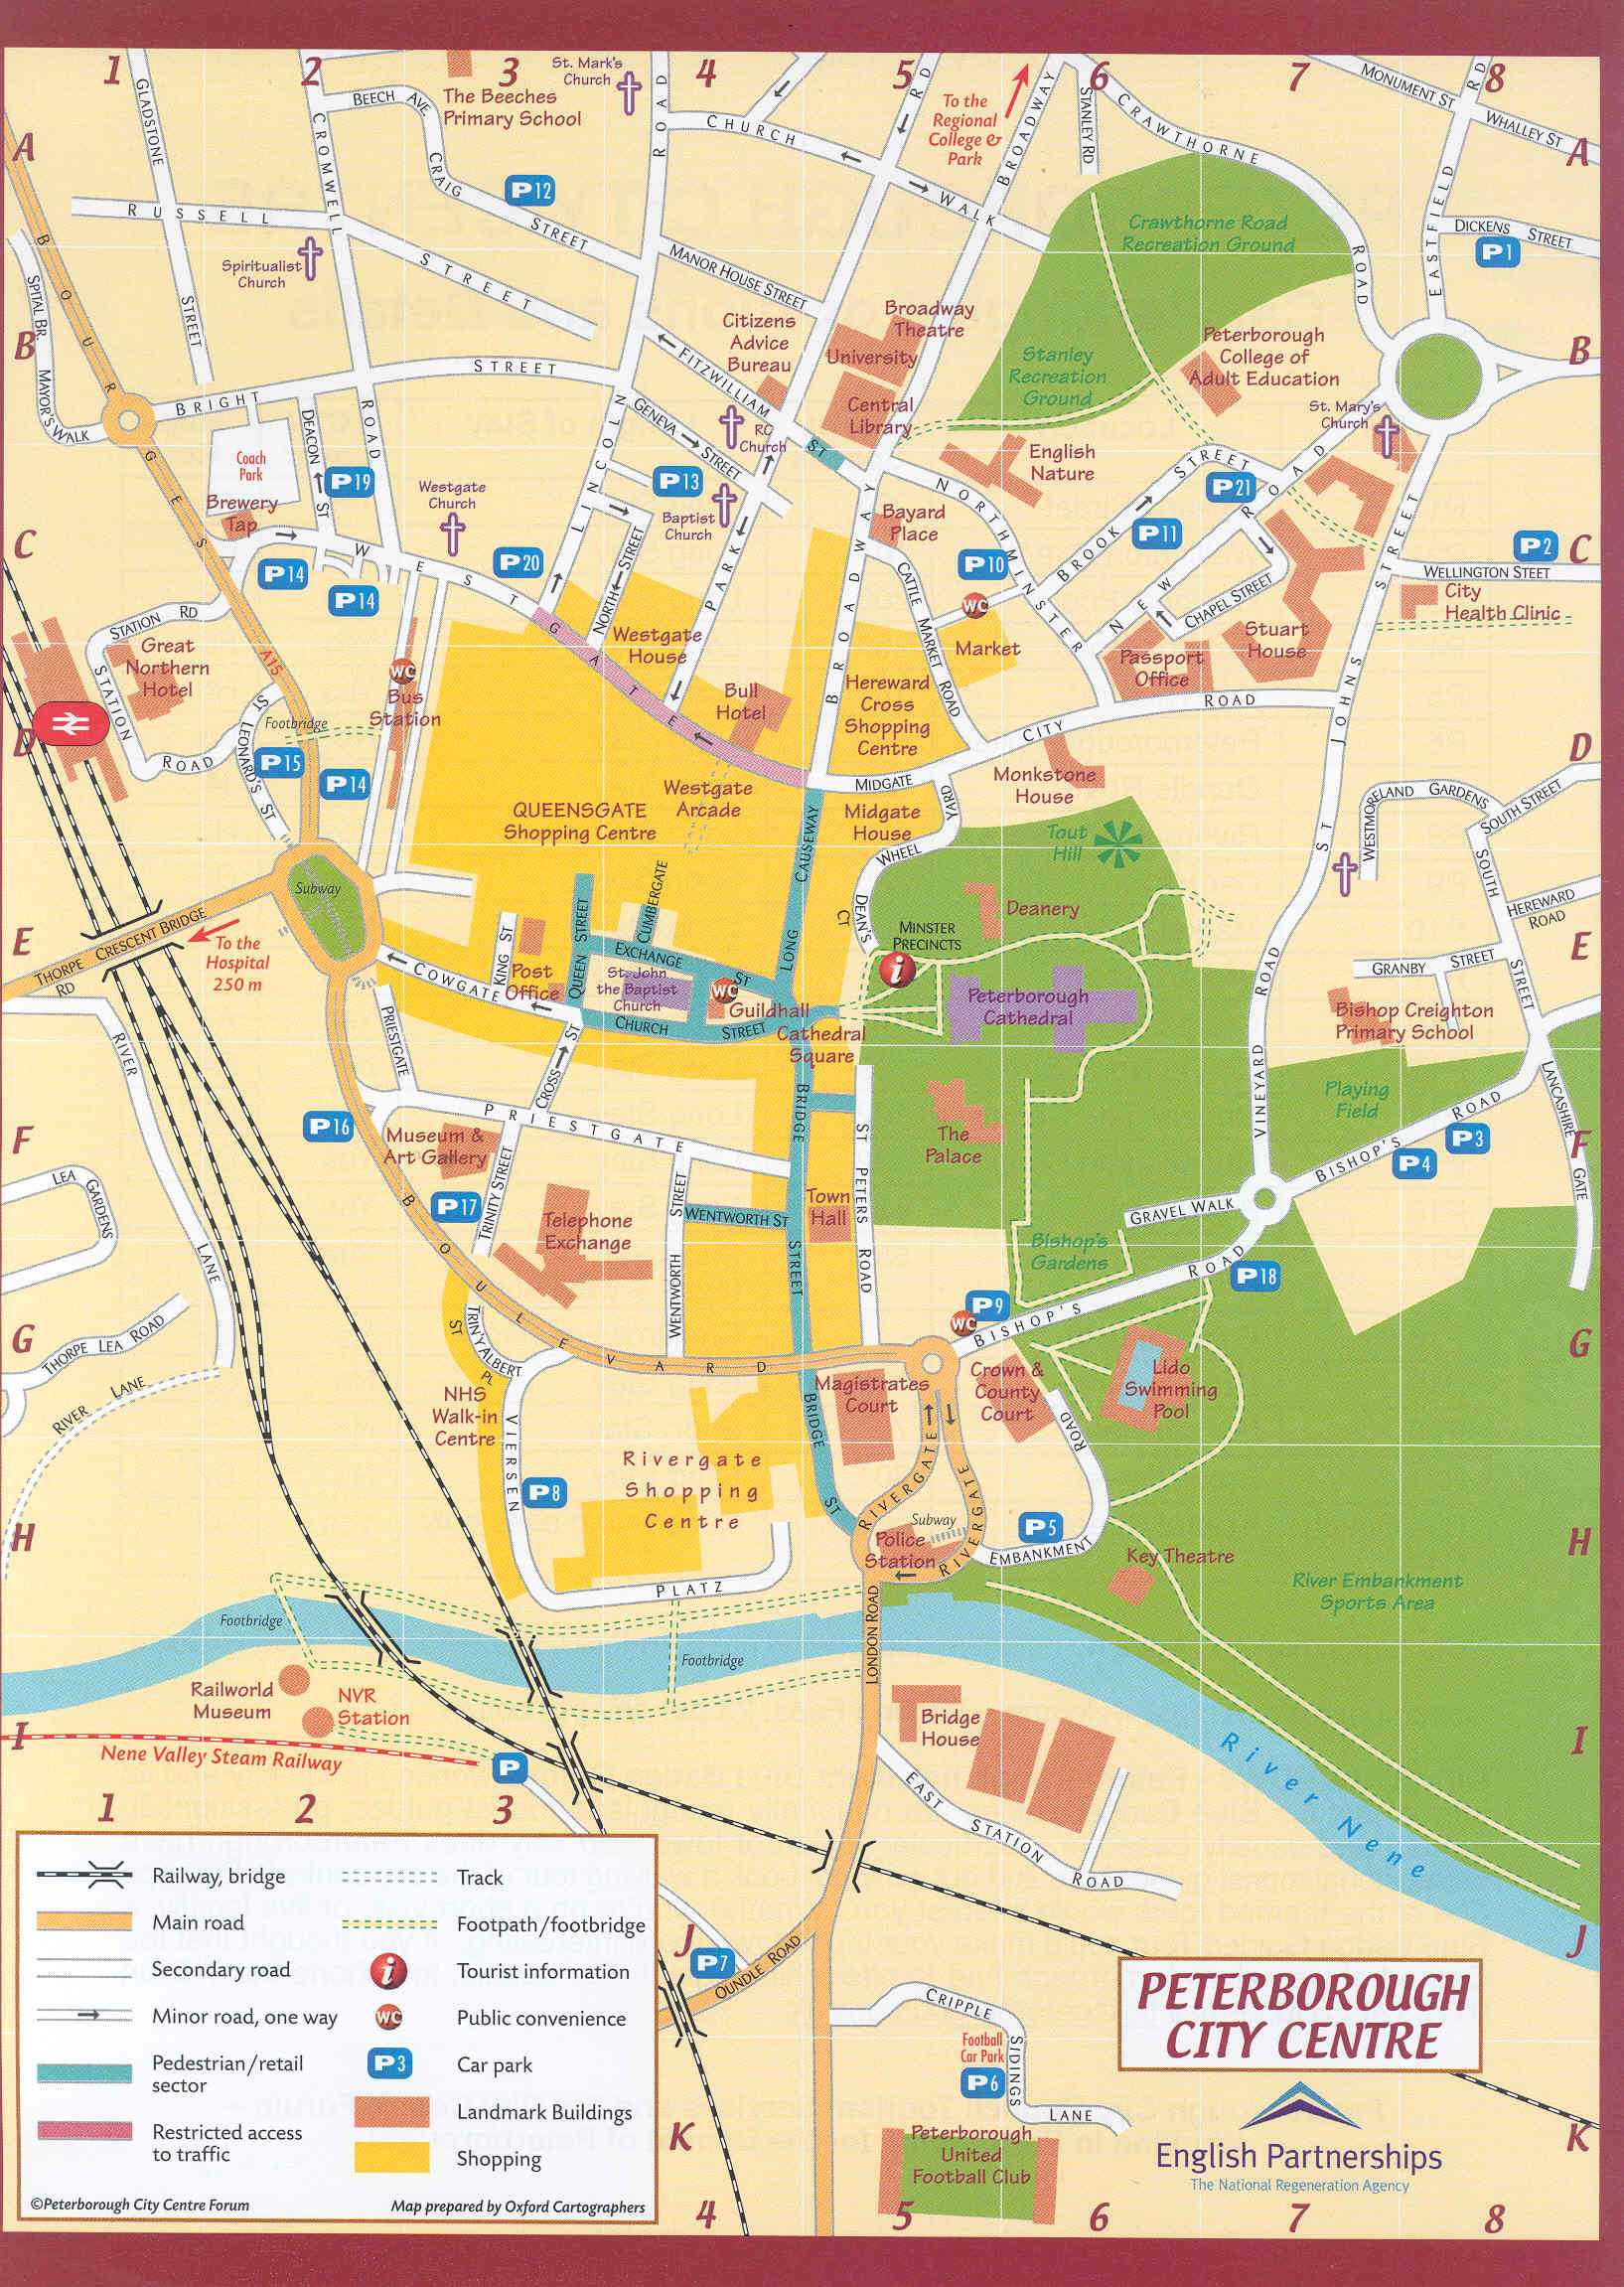 City Map Of England.Peterborough City Center Map Peterborough England Mappery